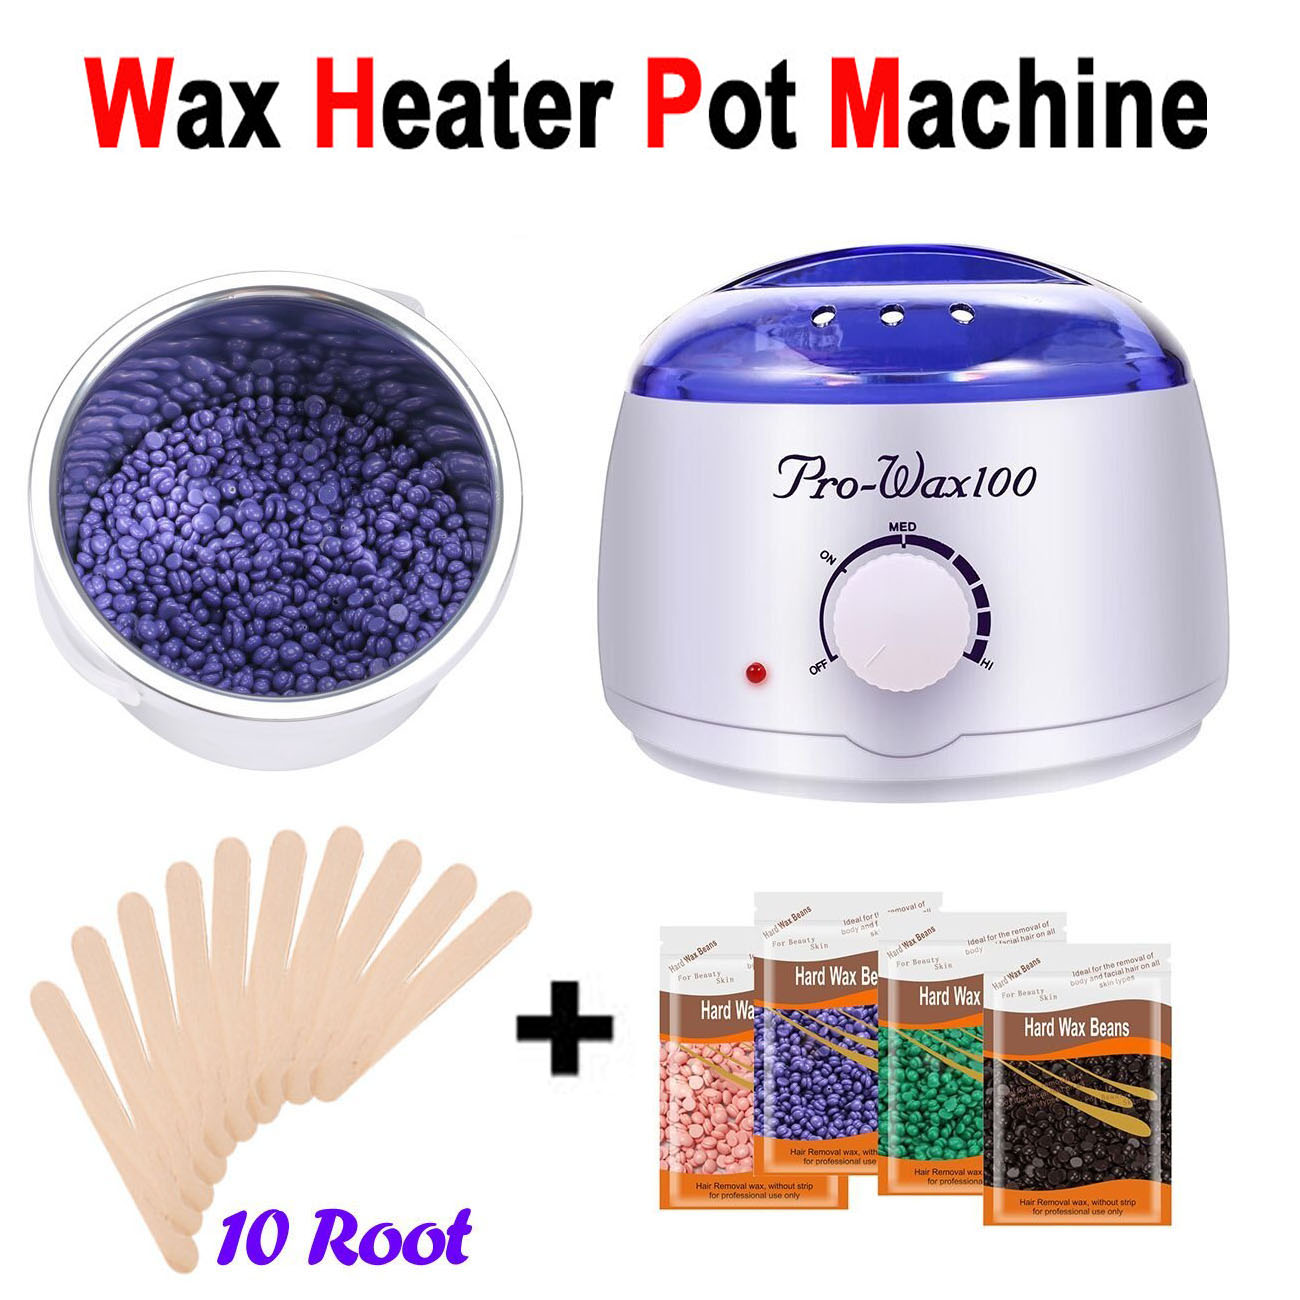 110v 220v Wax Heater Pot 100g Wax Beans Hair Removal Paraffin Cream Warmer Spa Ebay